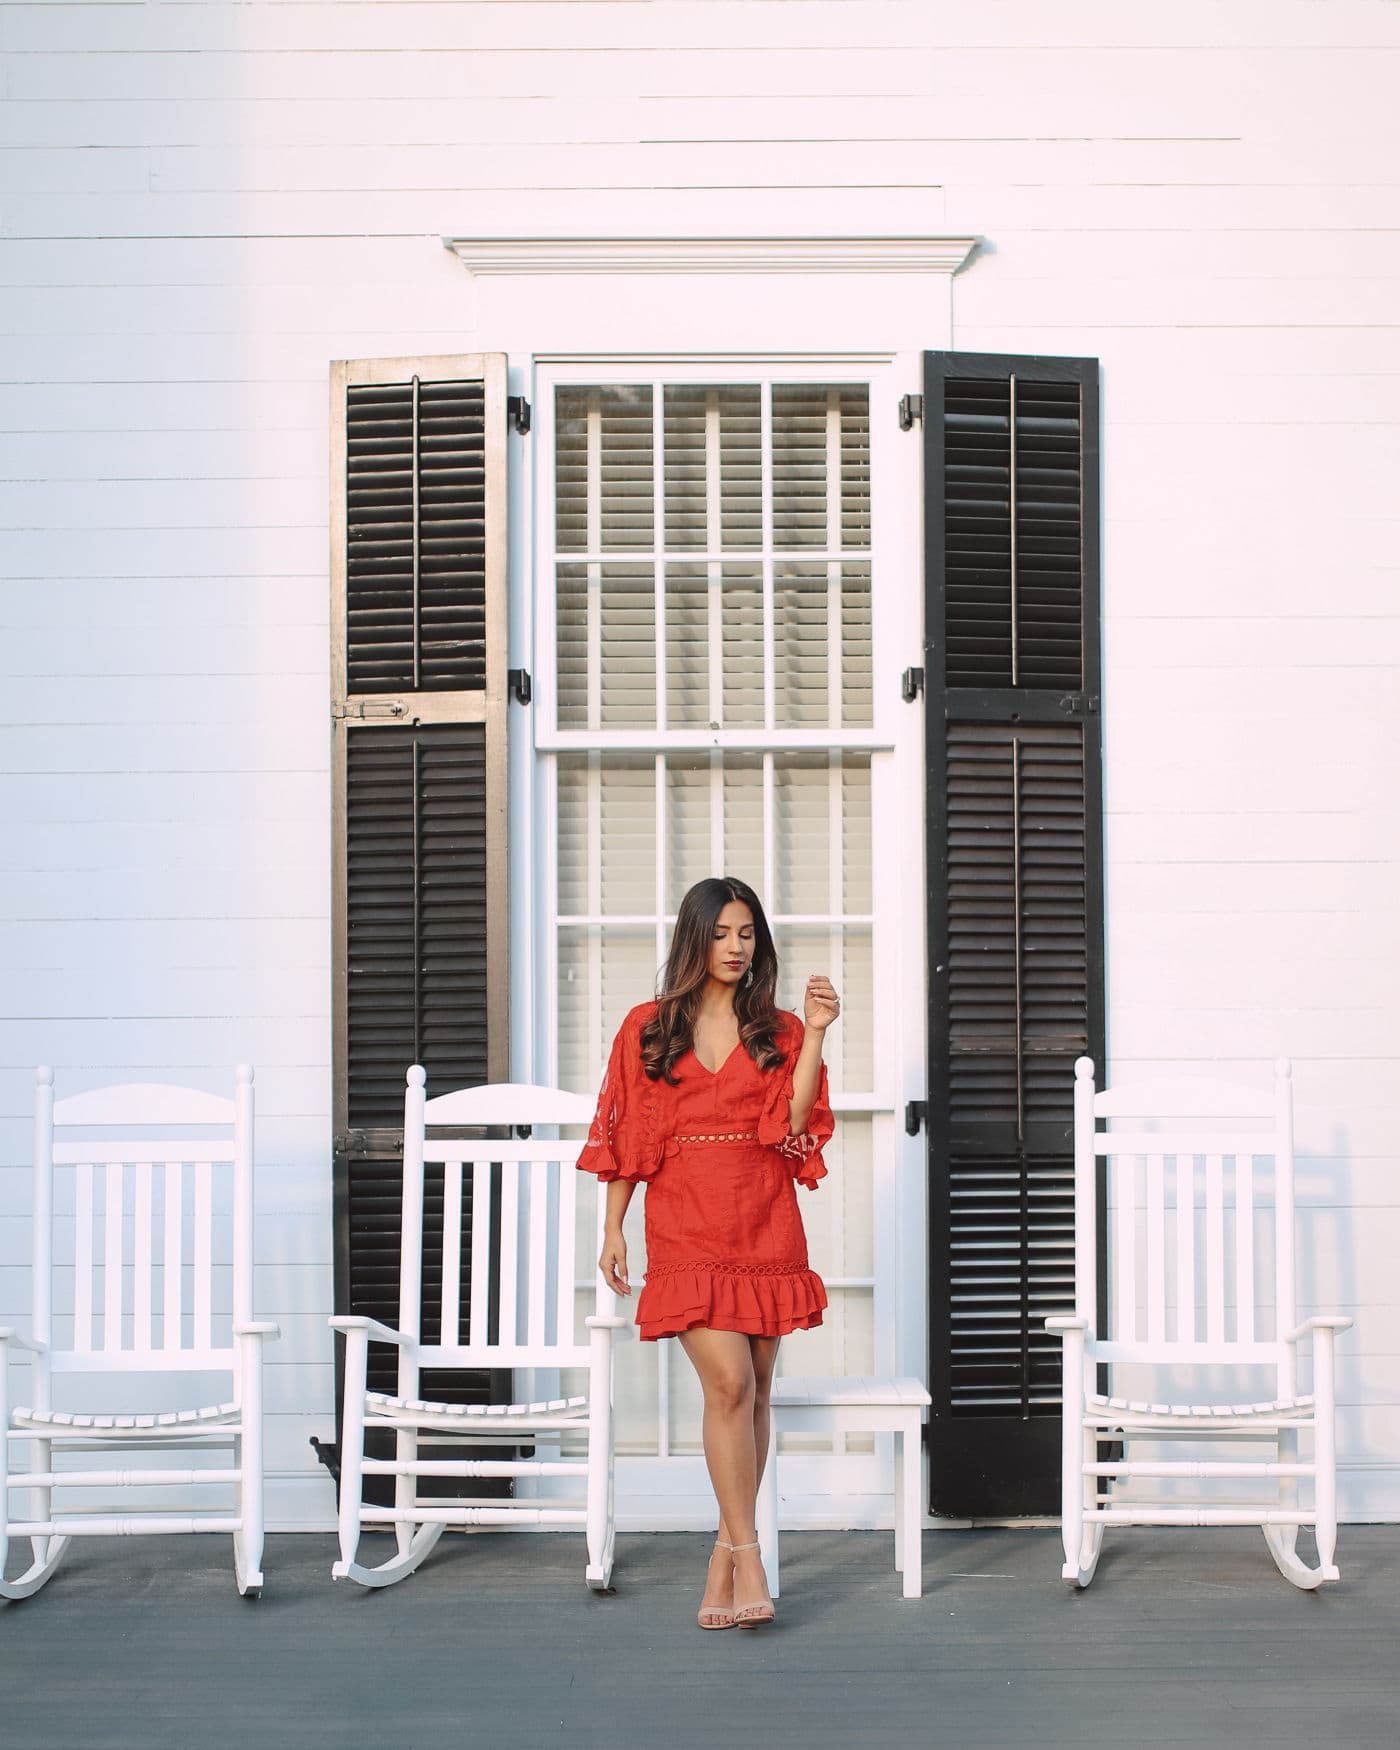 Sabrina standing in front of a window